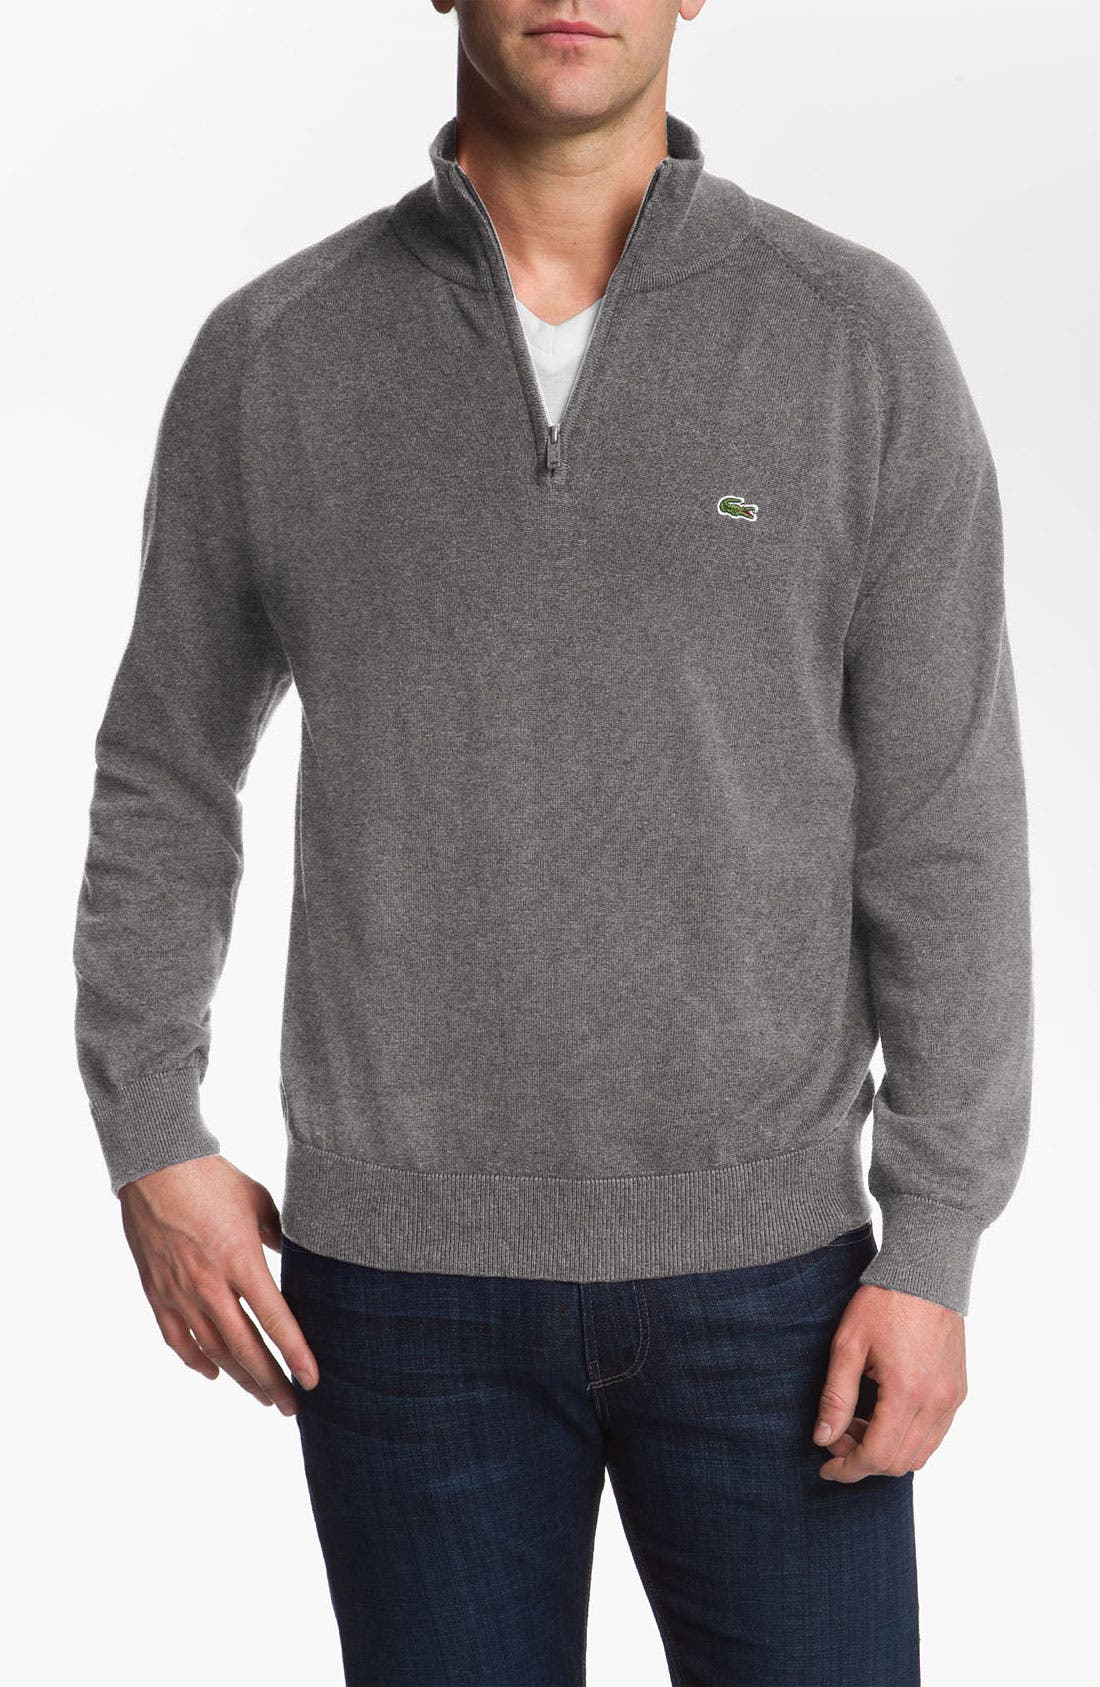 Alternate Image 1 Selected - Lacoste Quarter Zip Regular Fit Sweater